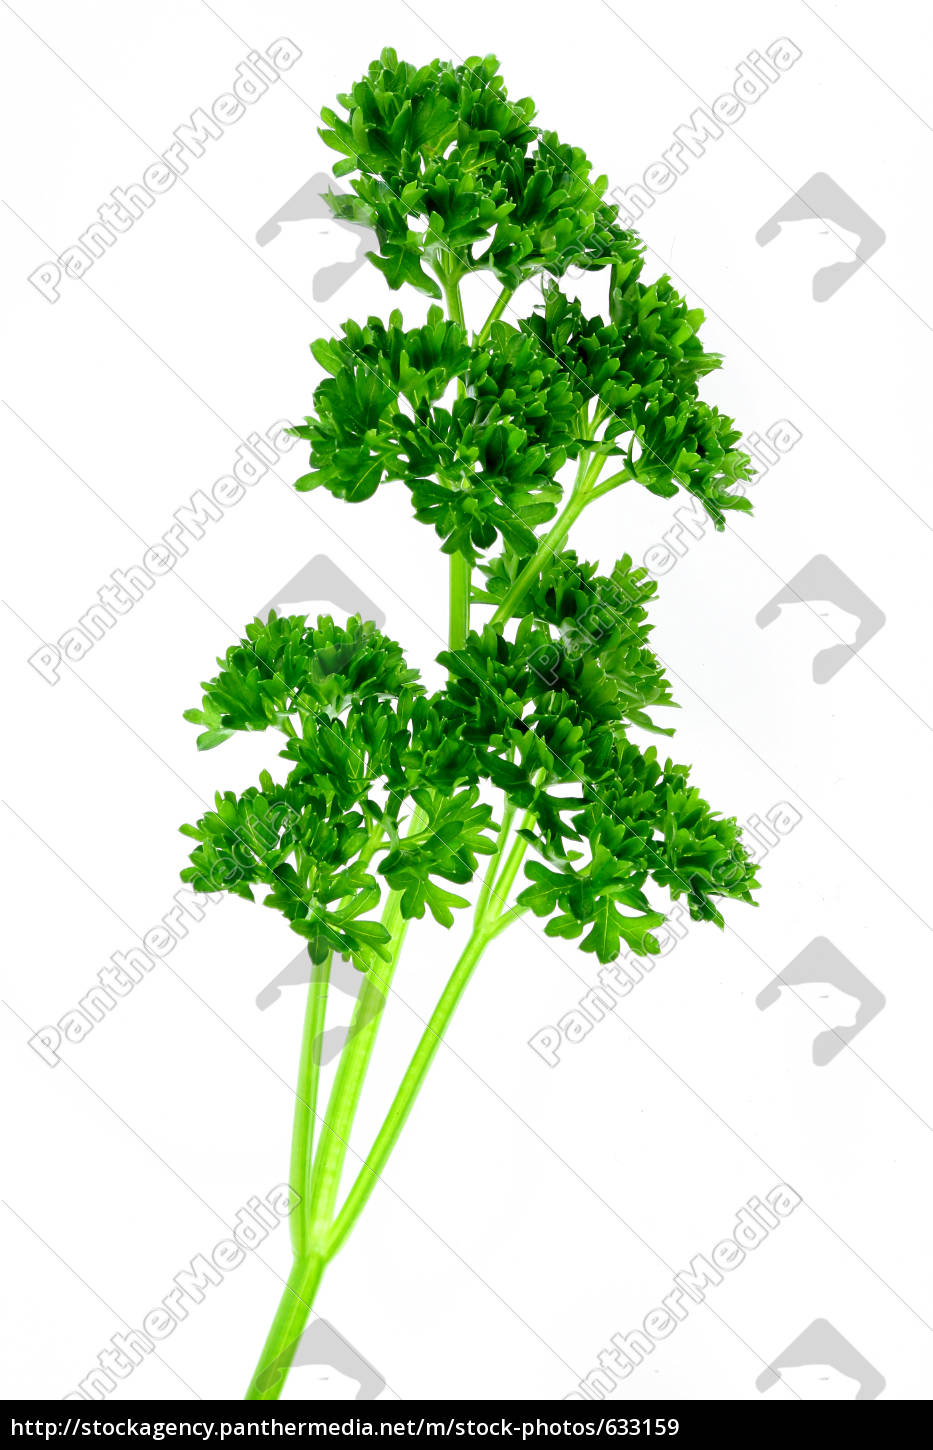 parsley - 633159